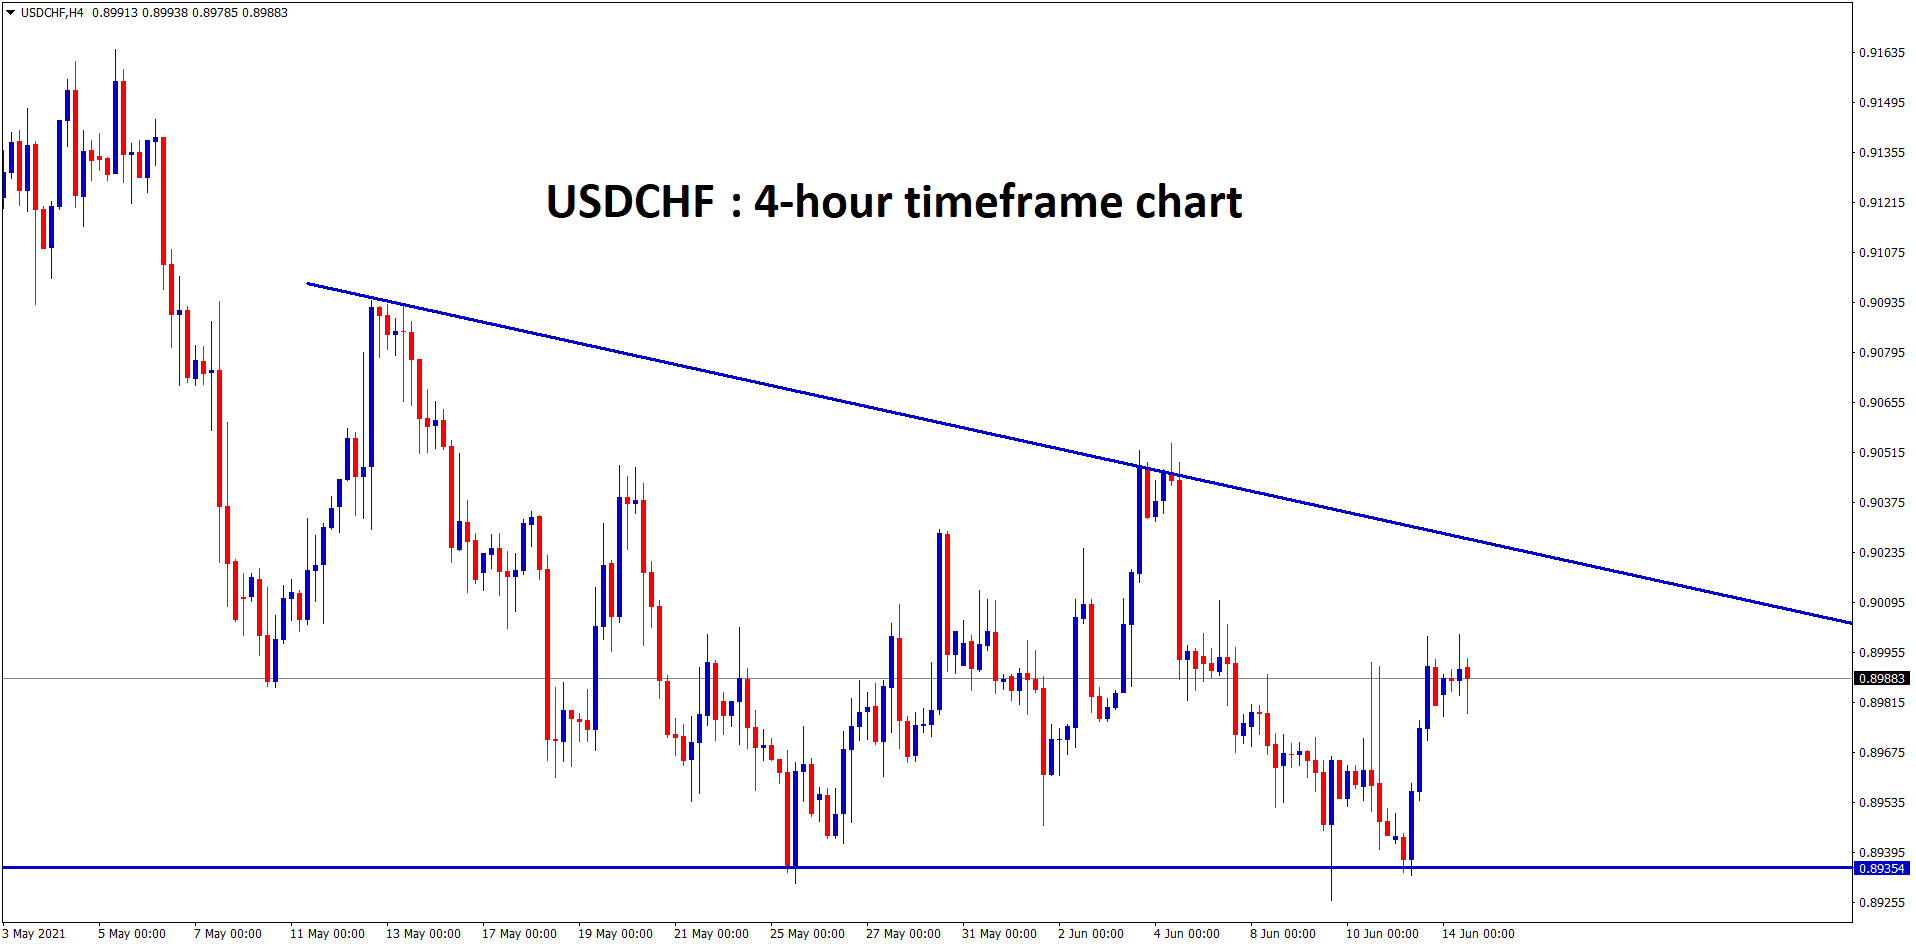 USDCHF is moving in a descending Triangle pattern